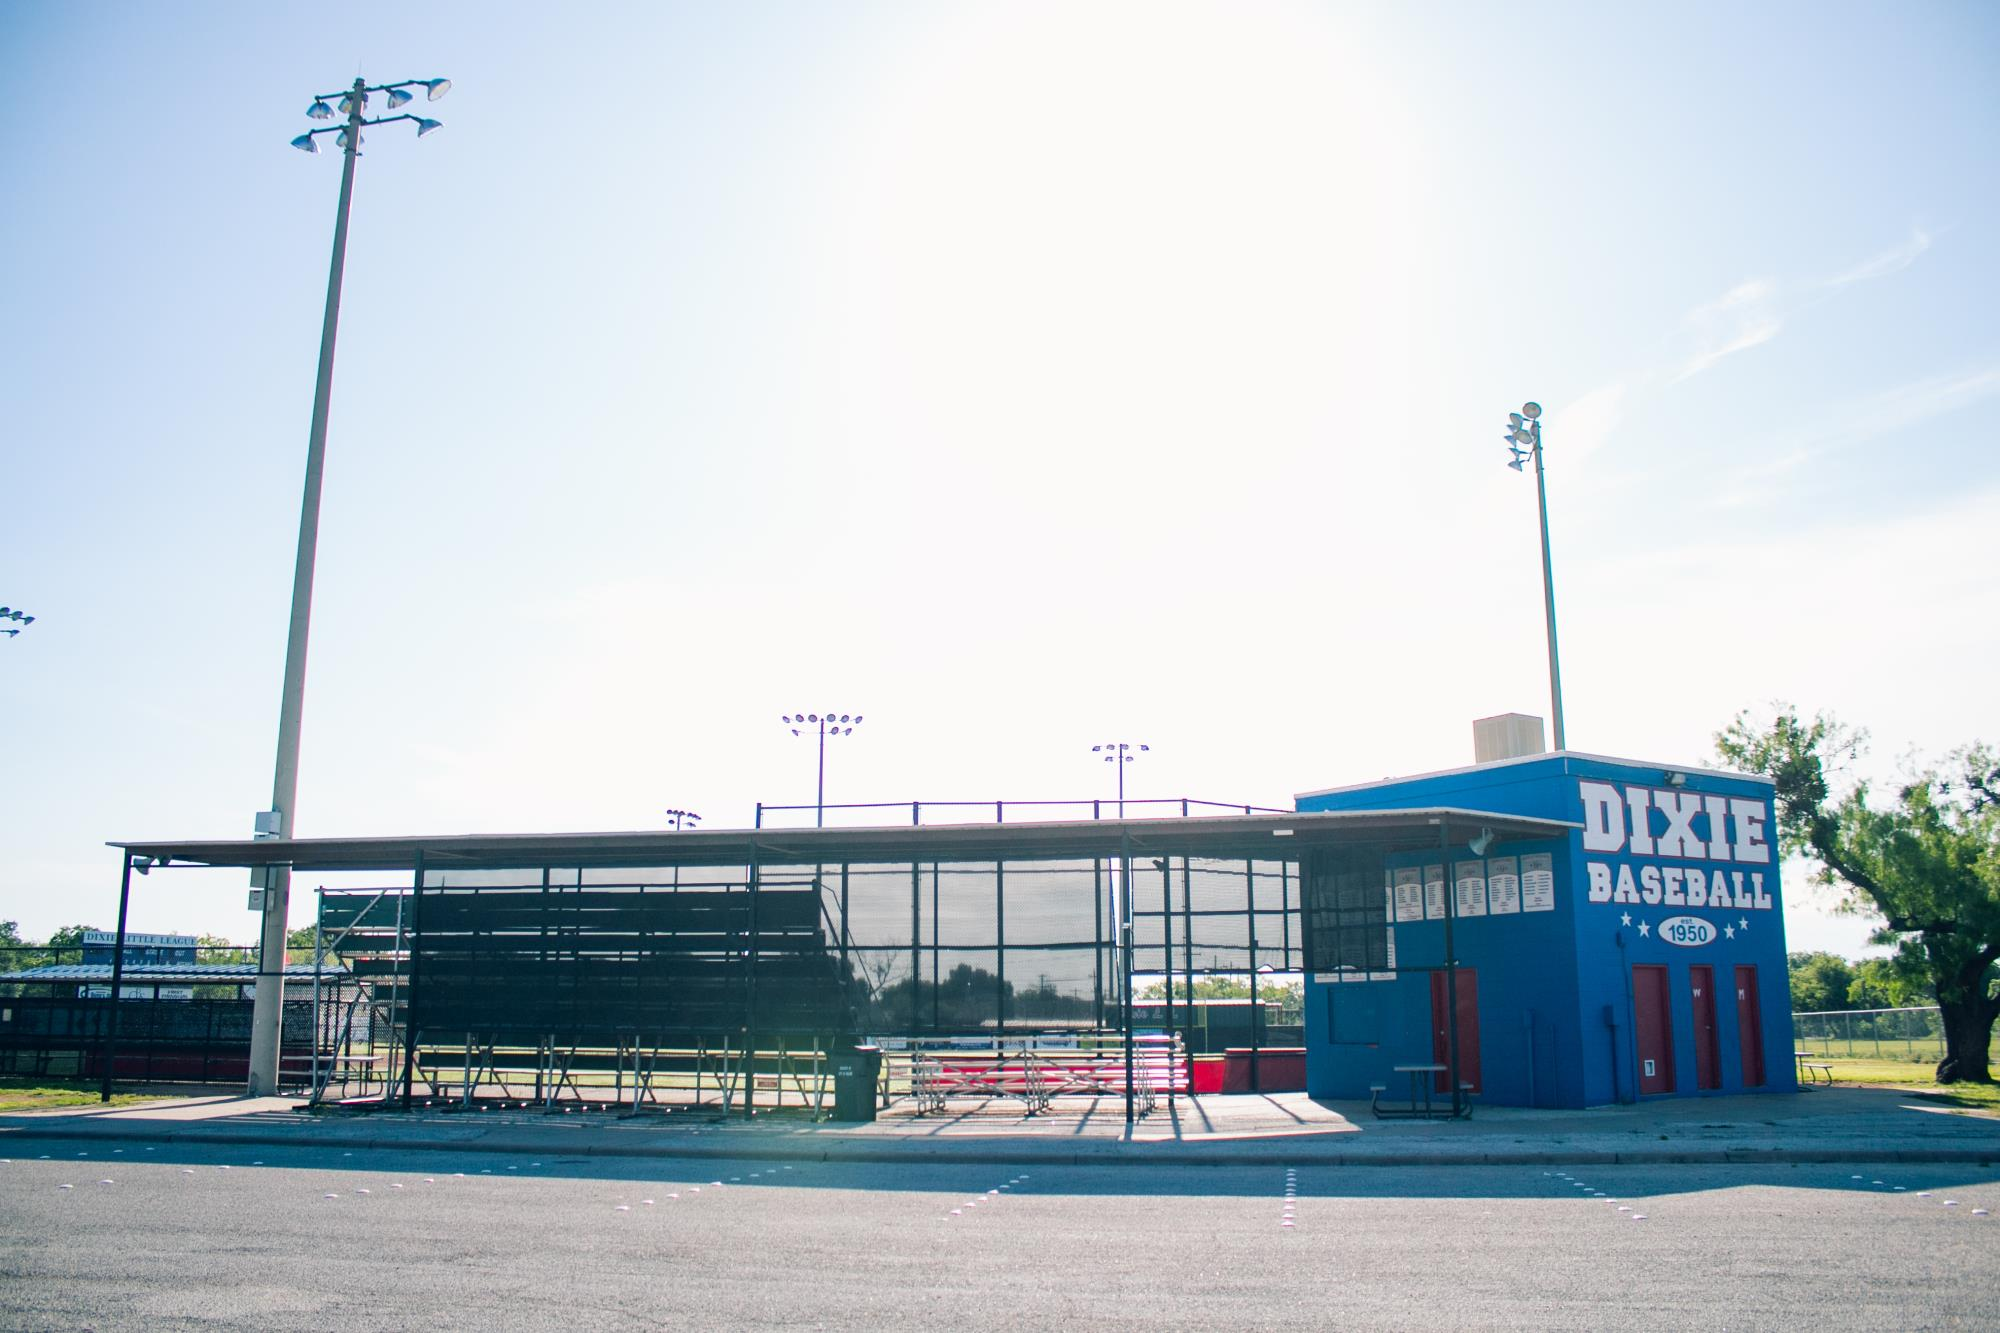 Dixie Baseball Building Next to Ballfield